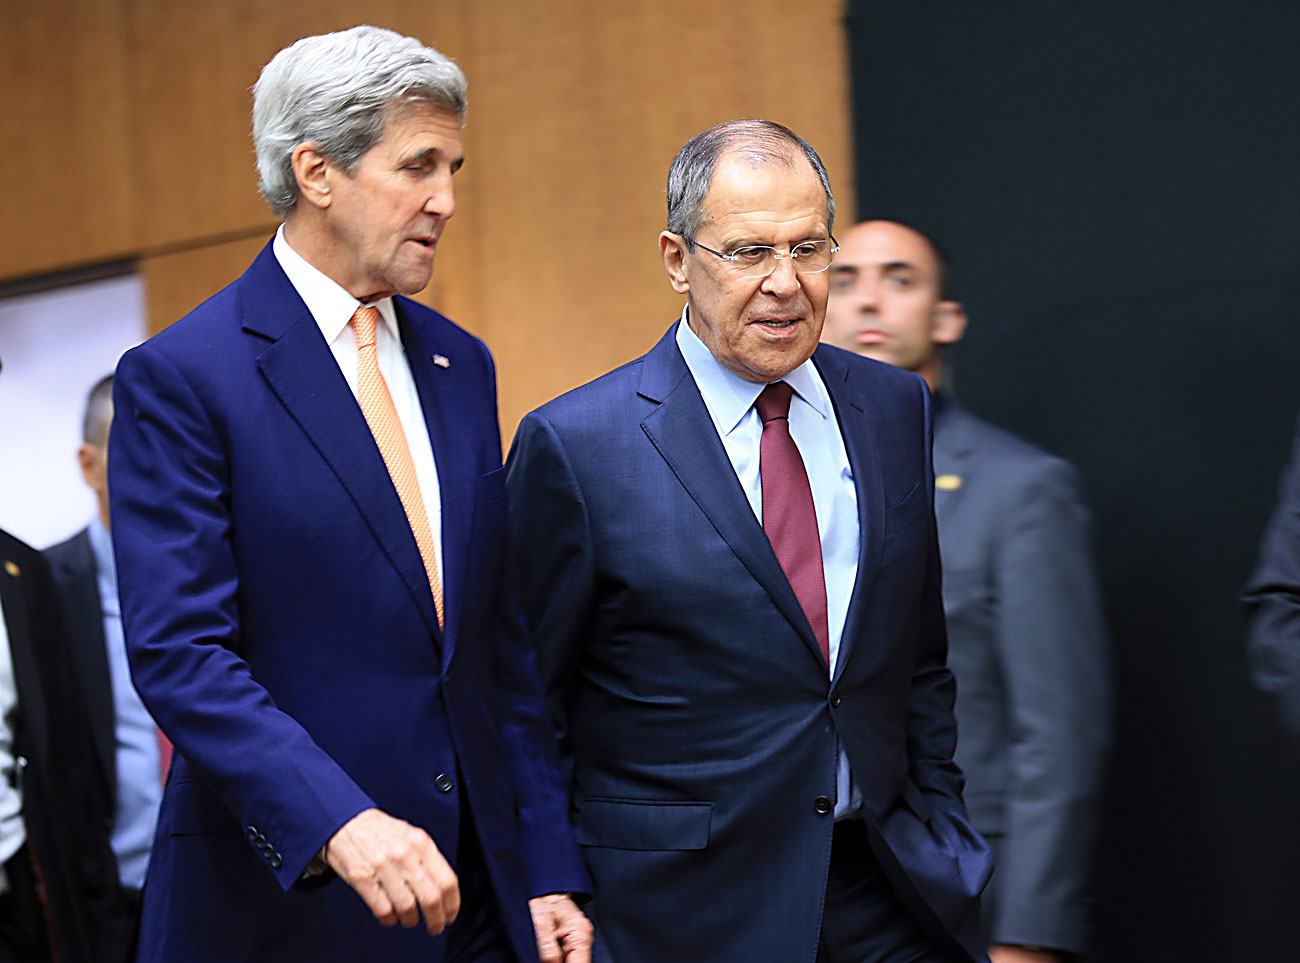 U.S. Secretary of State John Kerry and Russian Foreign Minister Sergei Lavrov arrives for a news conference after a meeting on Syria in Geneva, Switzerland, Aug. 26, 2016.